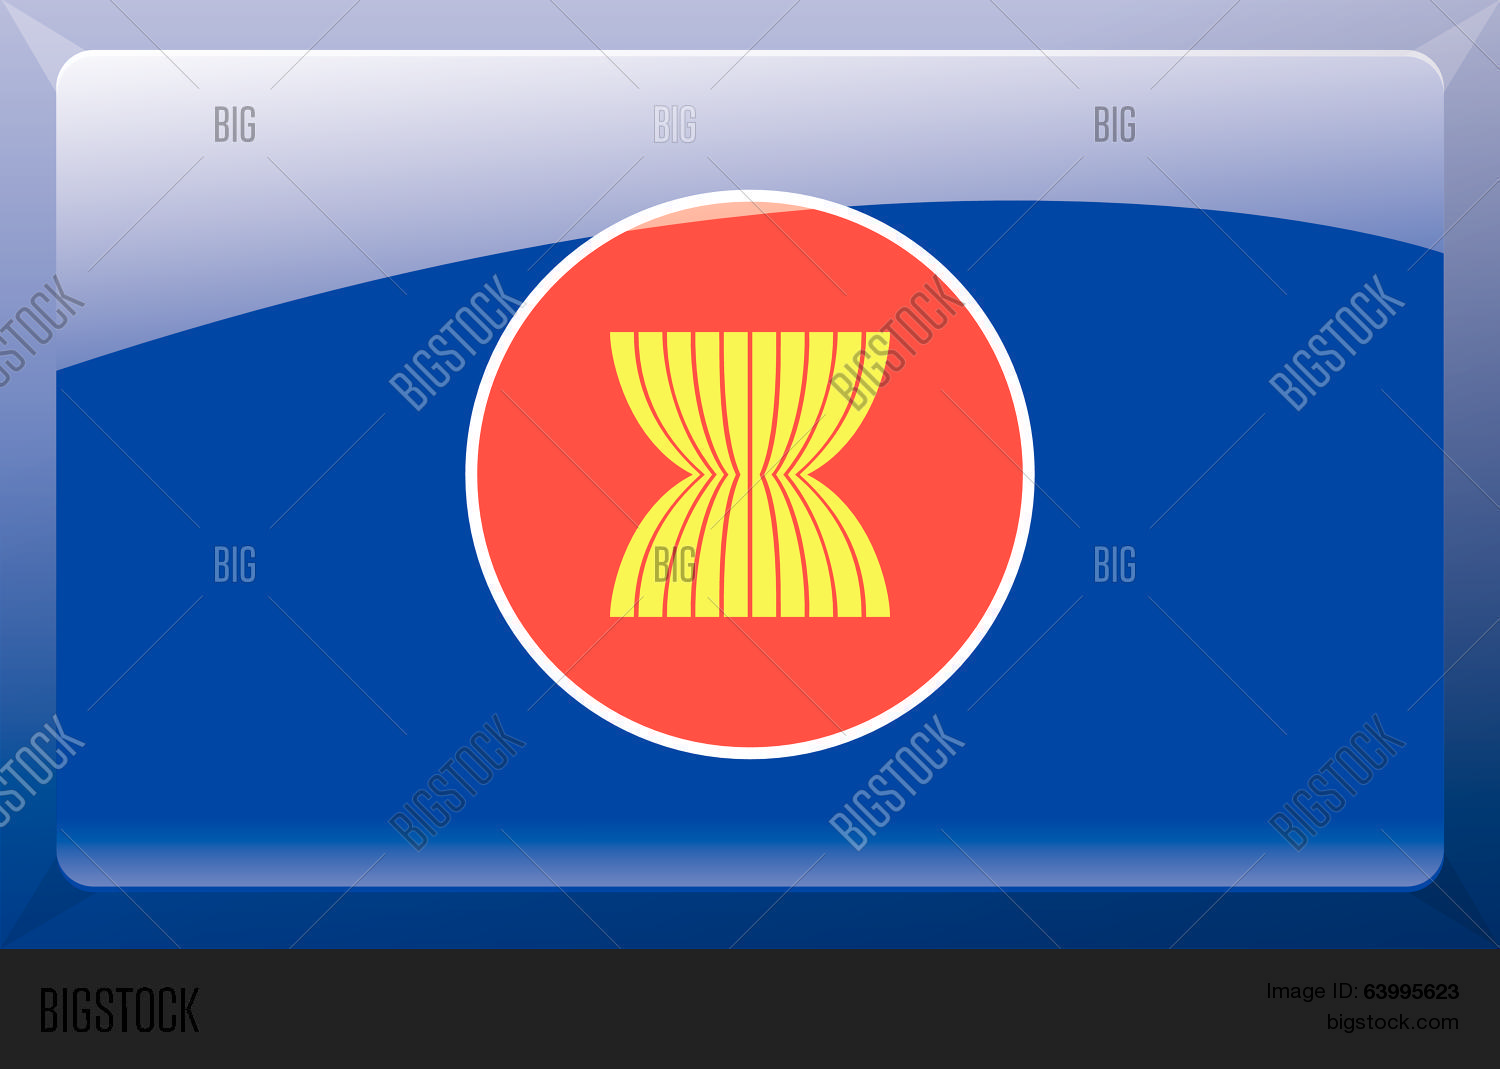 asean the eu mirror images Find this pin and more on eu: asean countries, indonesia dedicated to bringing writers clean images of characters and scenes.